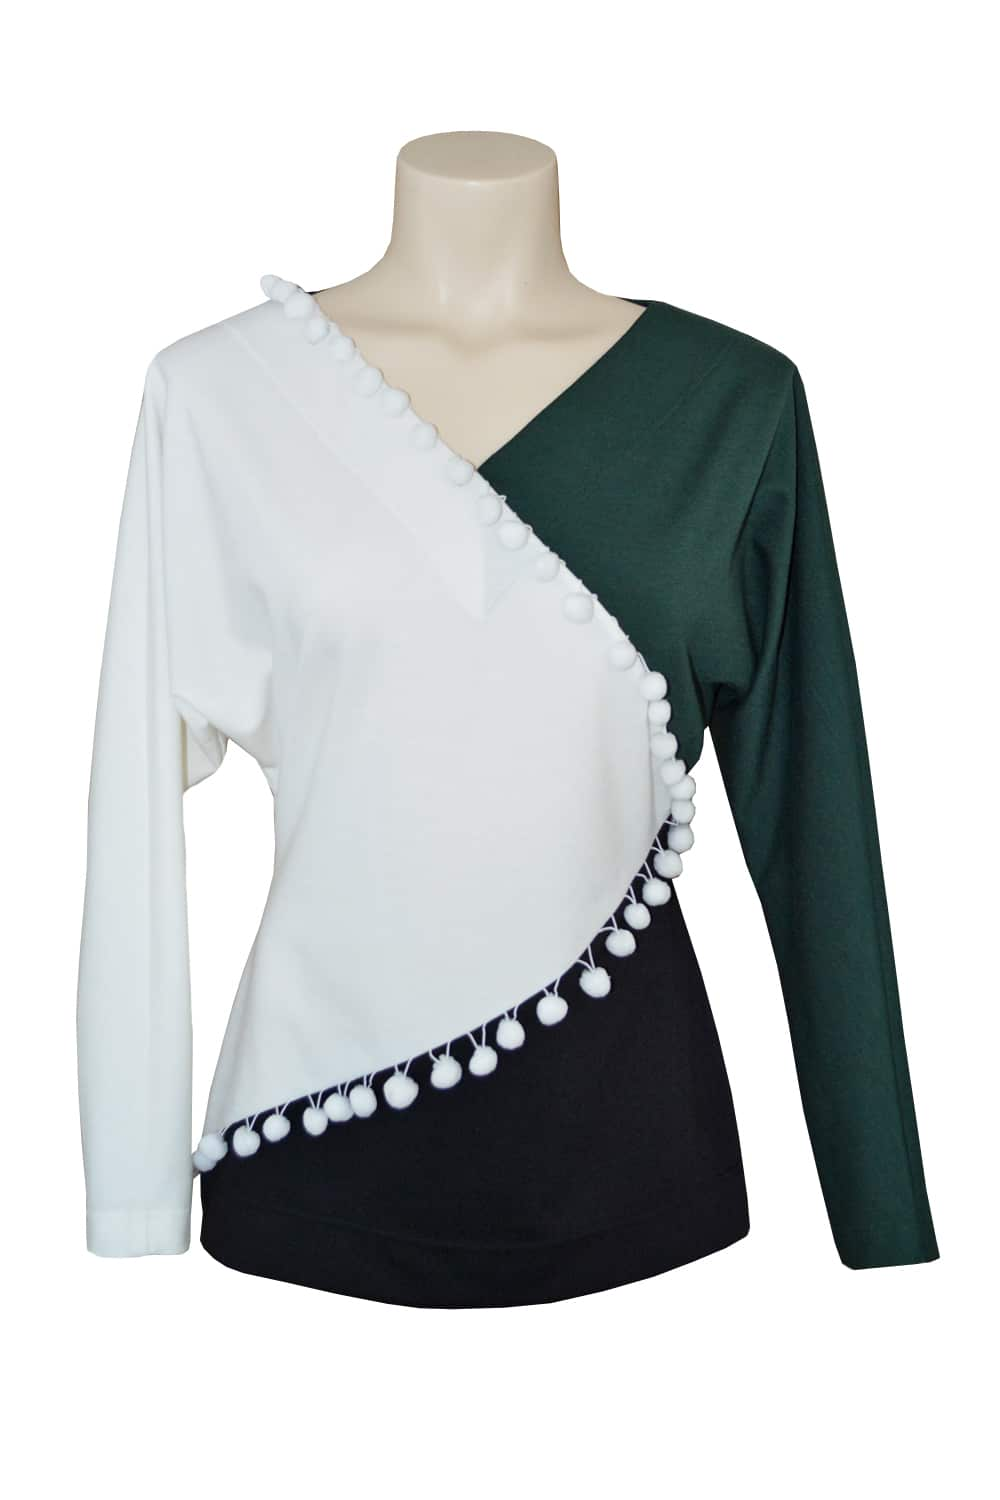 Asymmetrical tri-color wool jersey tunic accented with white pompoms.